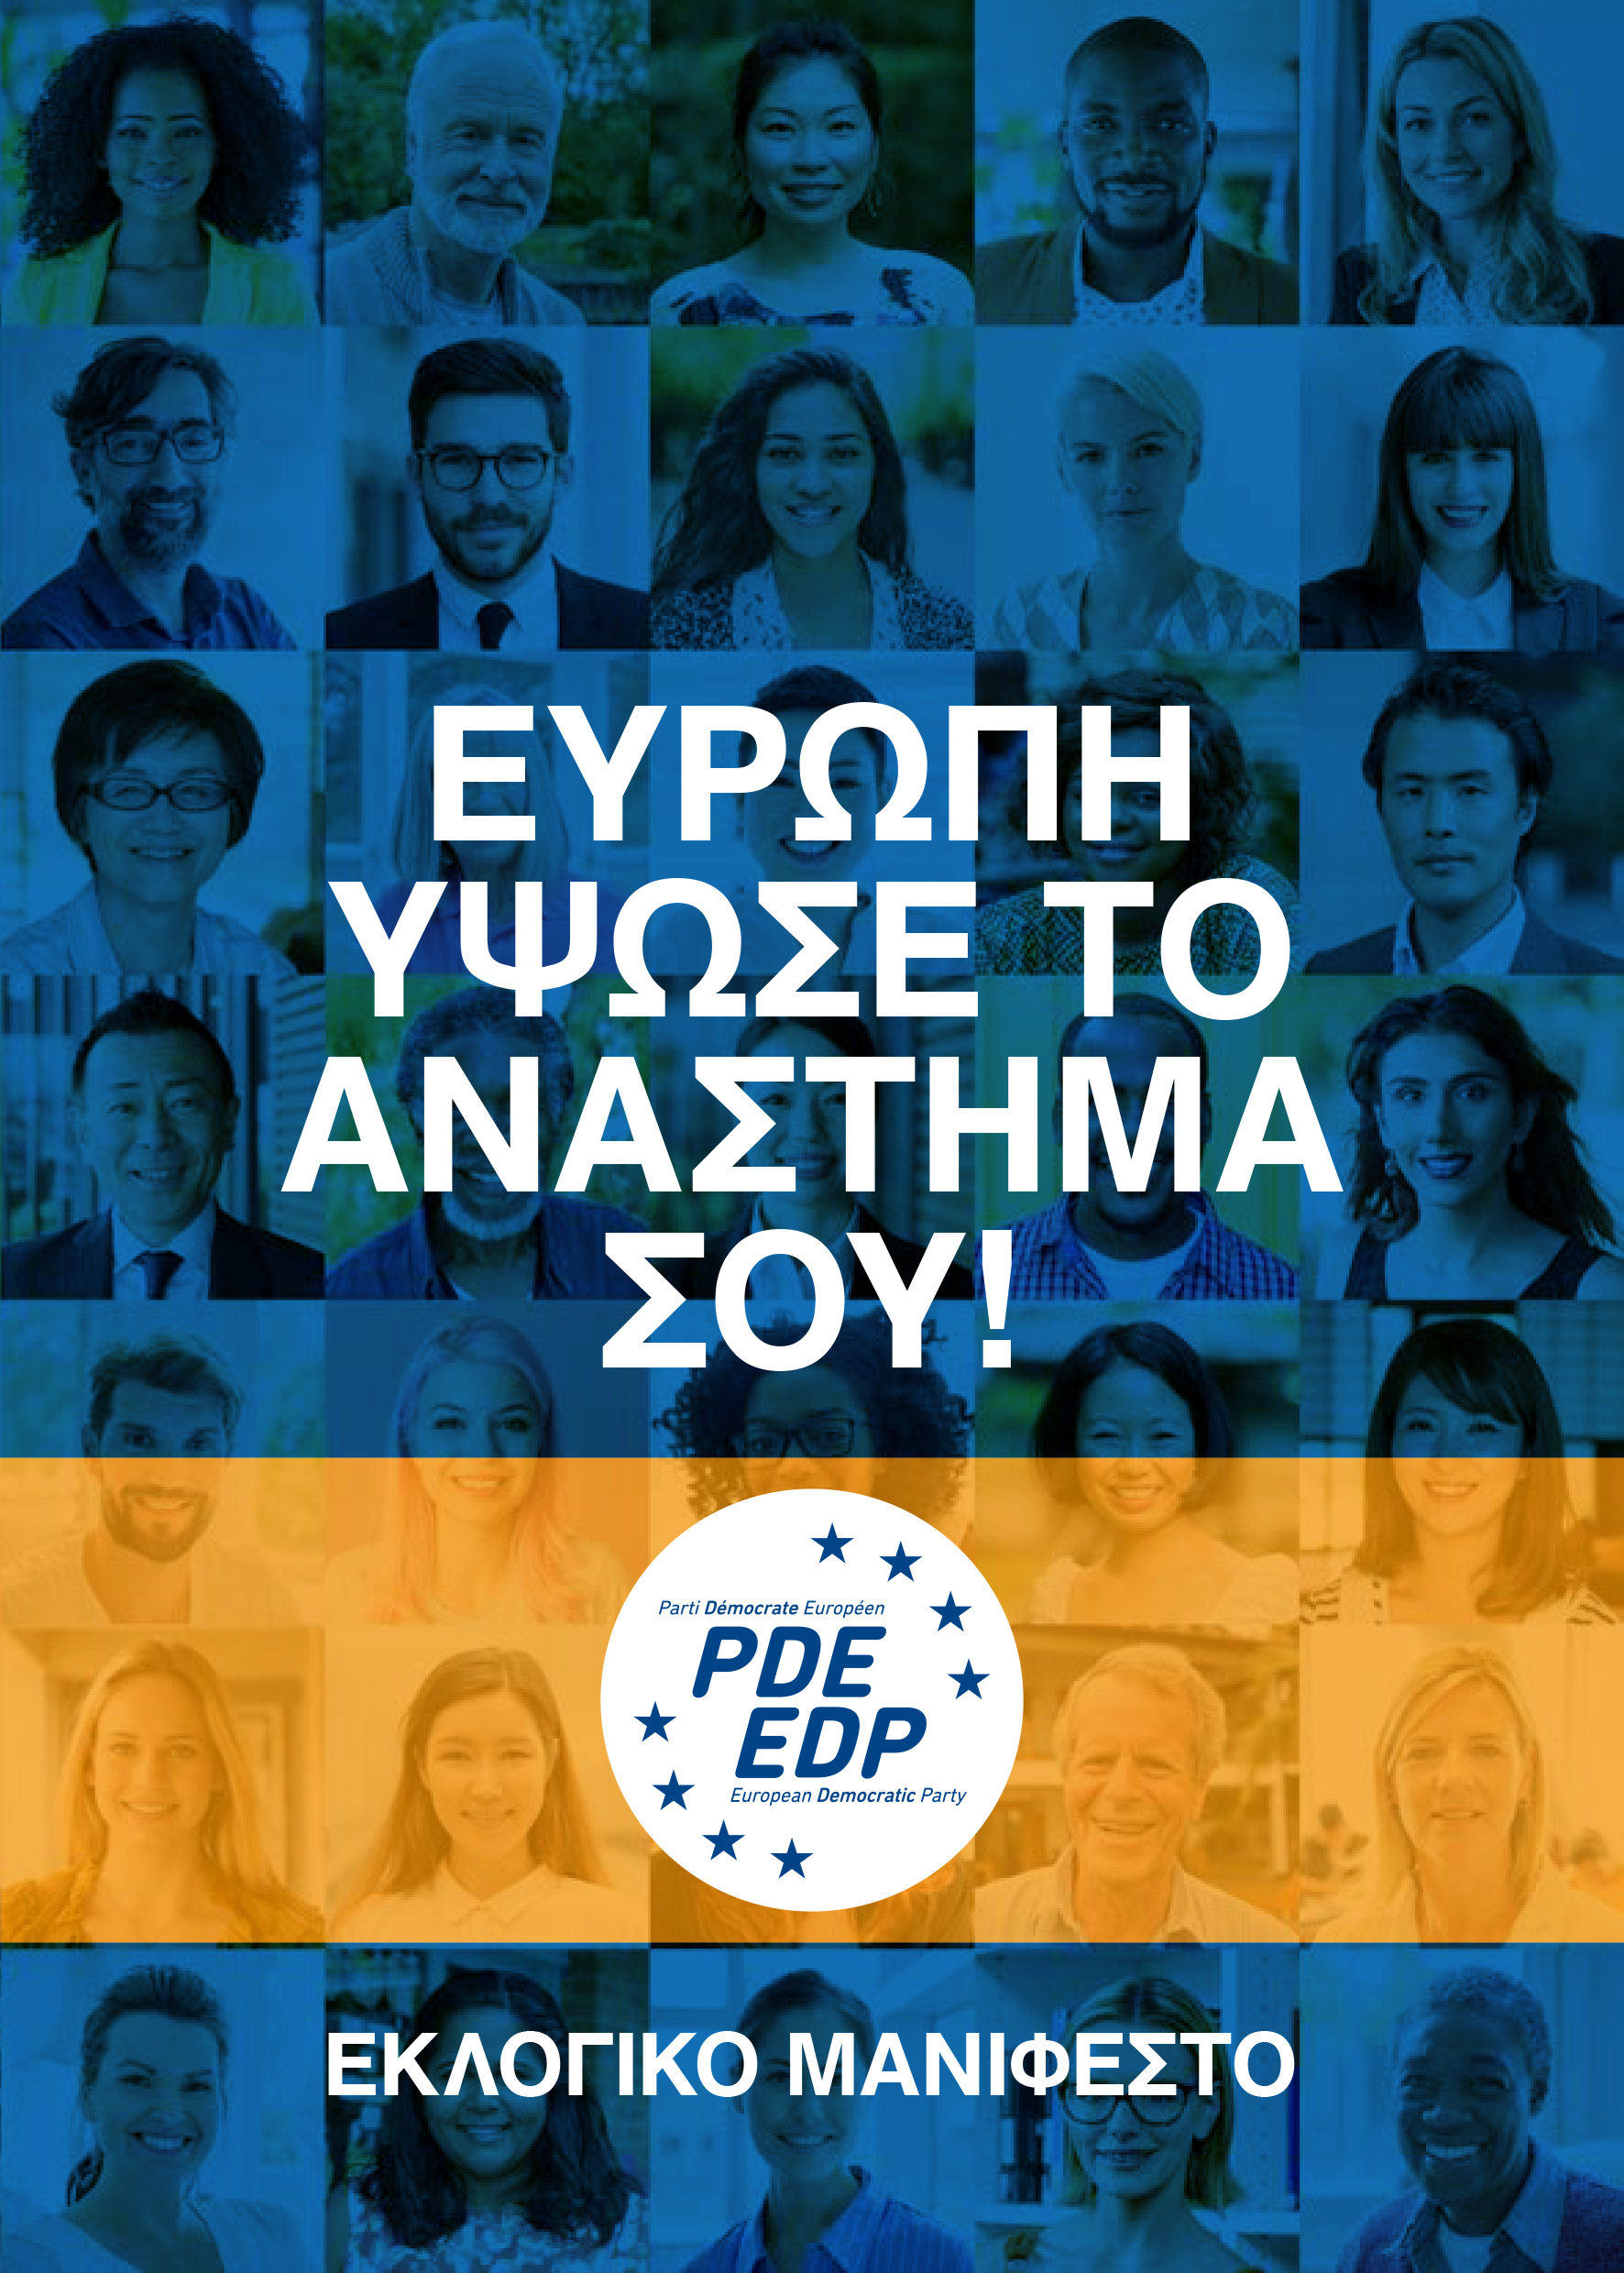 EDP manifesto in Greek